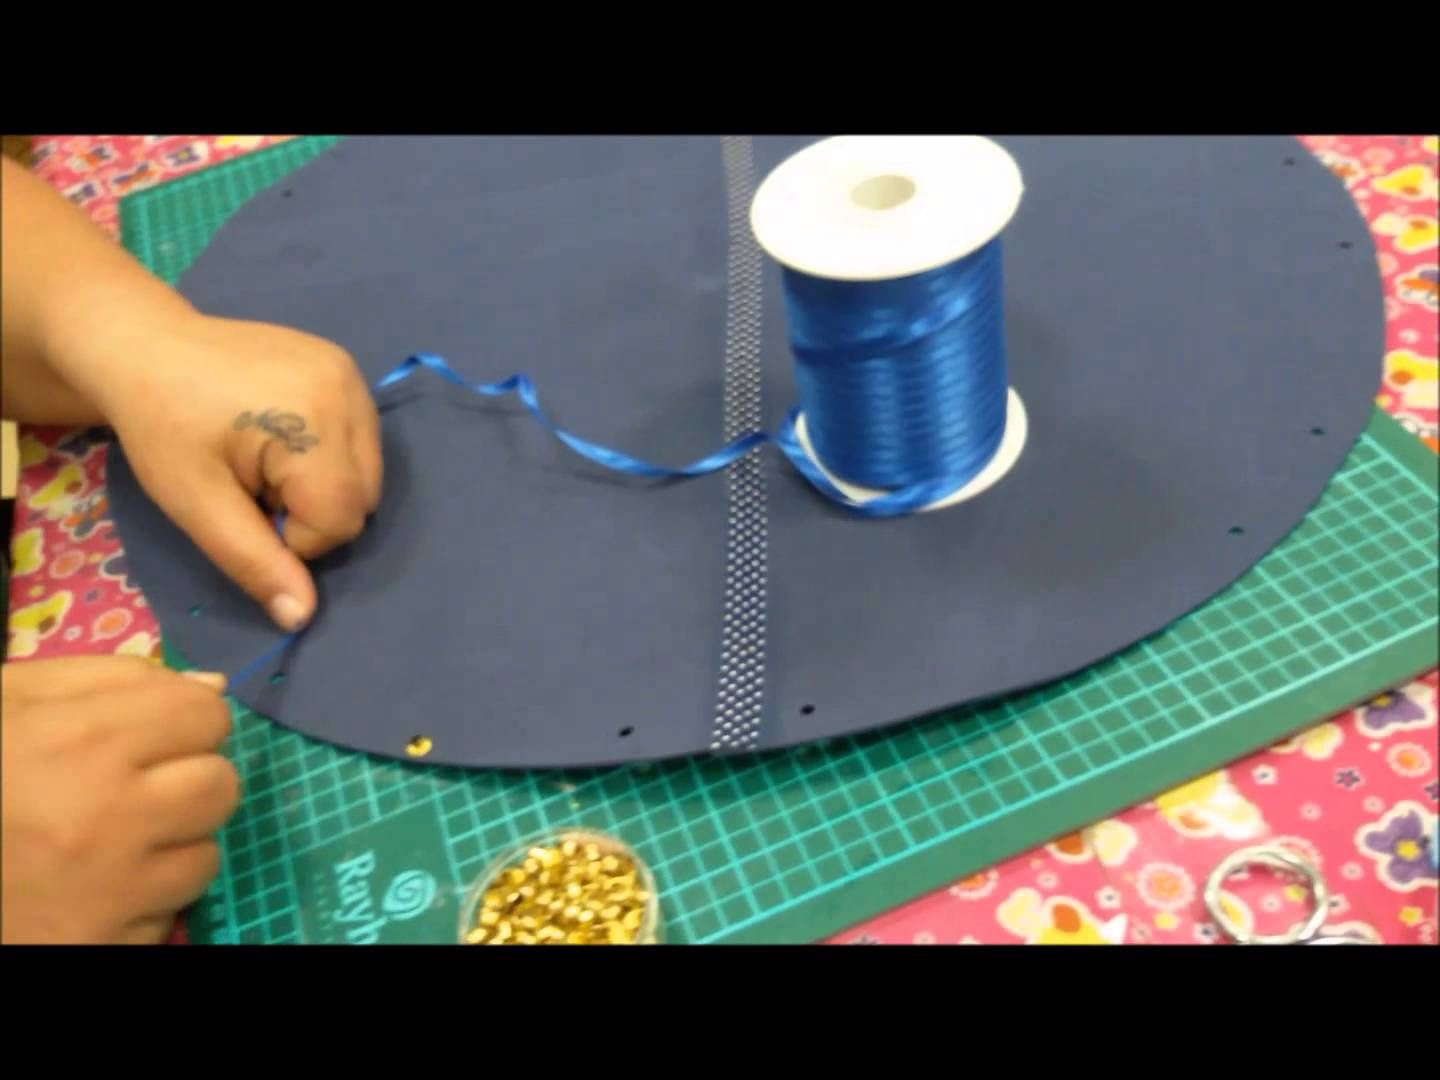 TUTORIAL BORSA MARE IN GOMMA CREPLA (FOMMY) BY OUTLET CREATIVO RITA SPER...